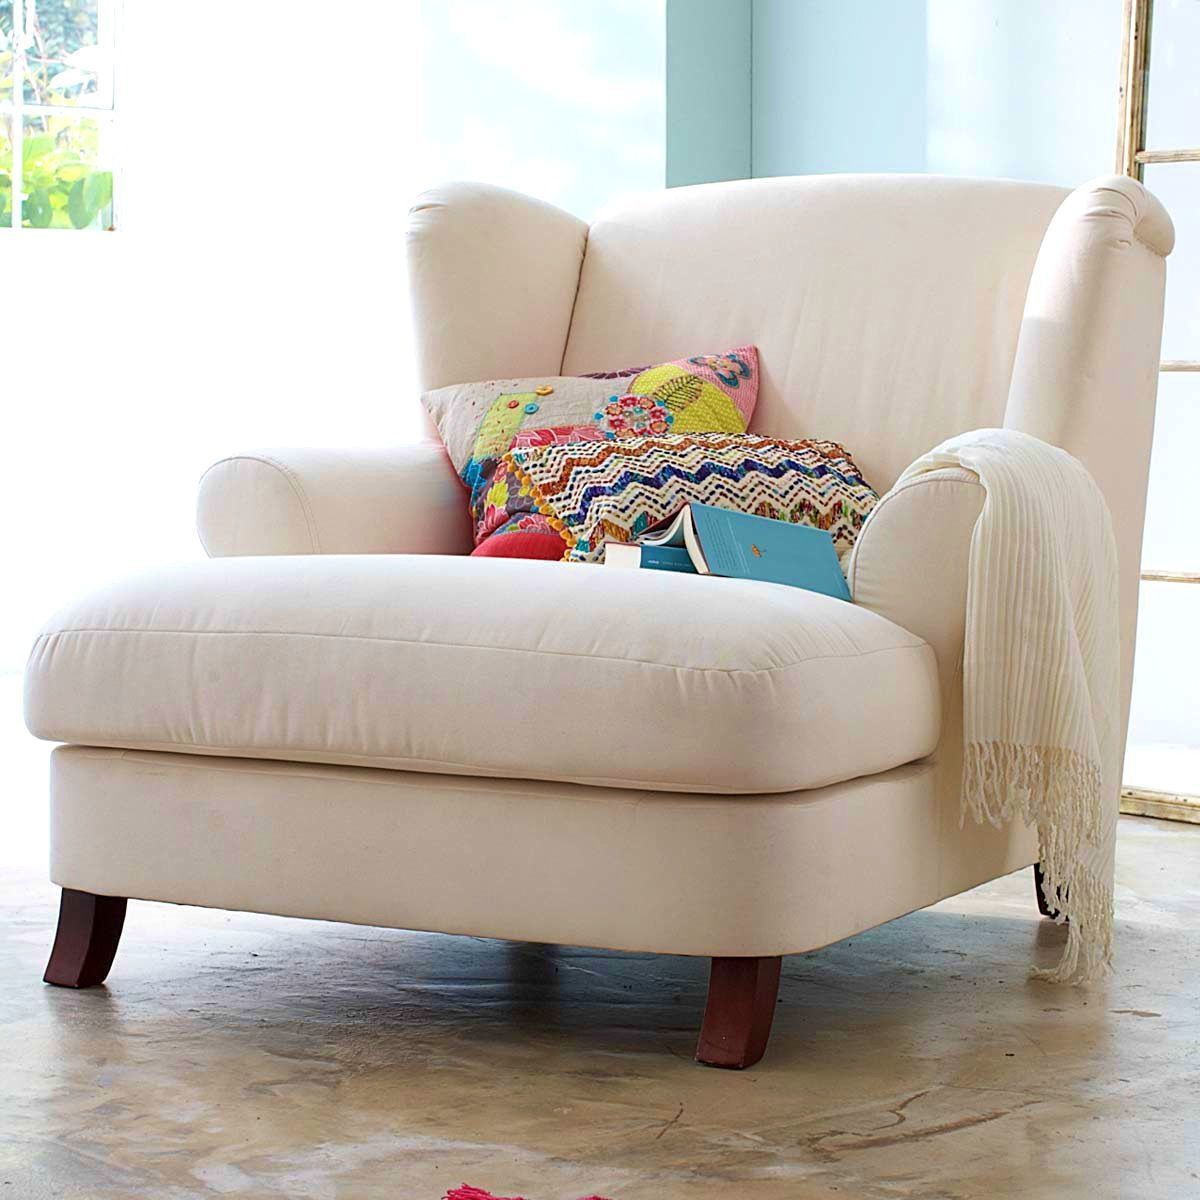 Bedroom Sweet Images About Reading Chair Chairs Comfy For Clroom Acdfbfcfdf Kids With Ottoman Most Small Australia Oversized Super